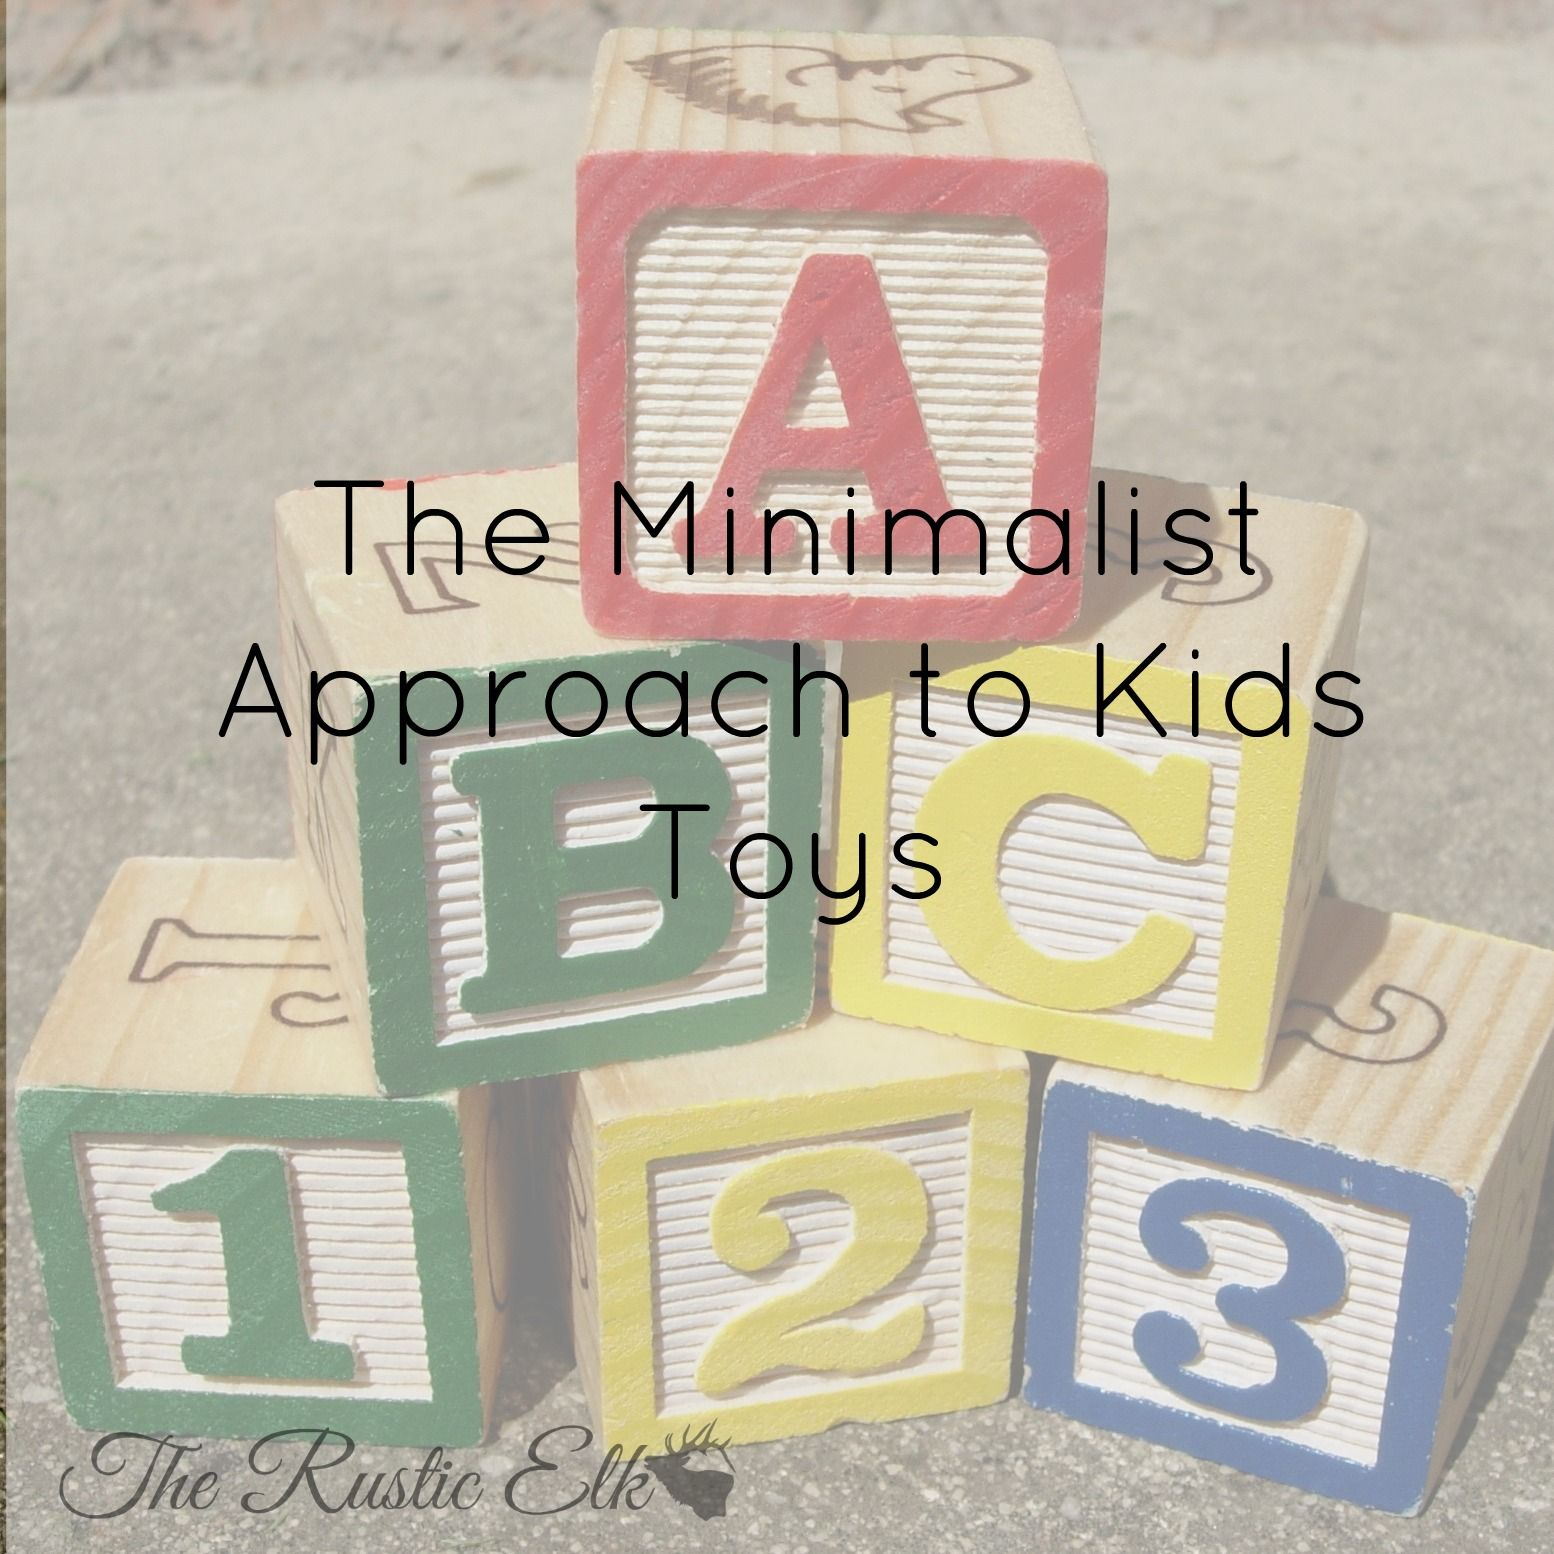 The Minimalist Approach to Kids Toys